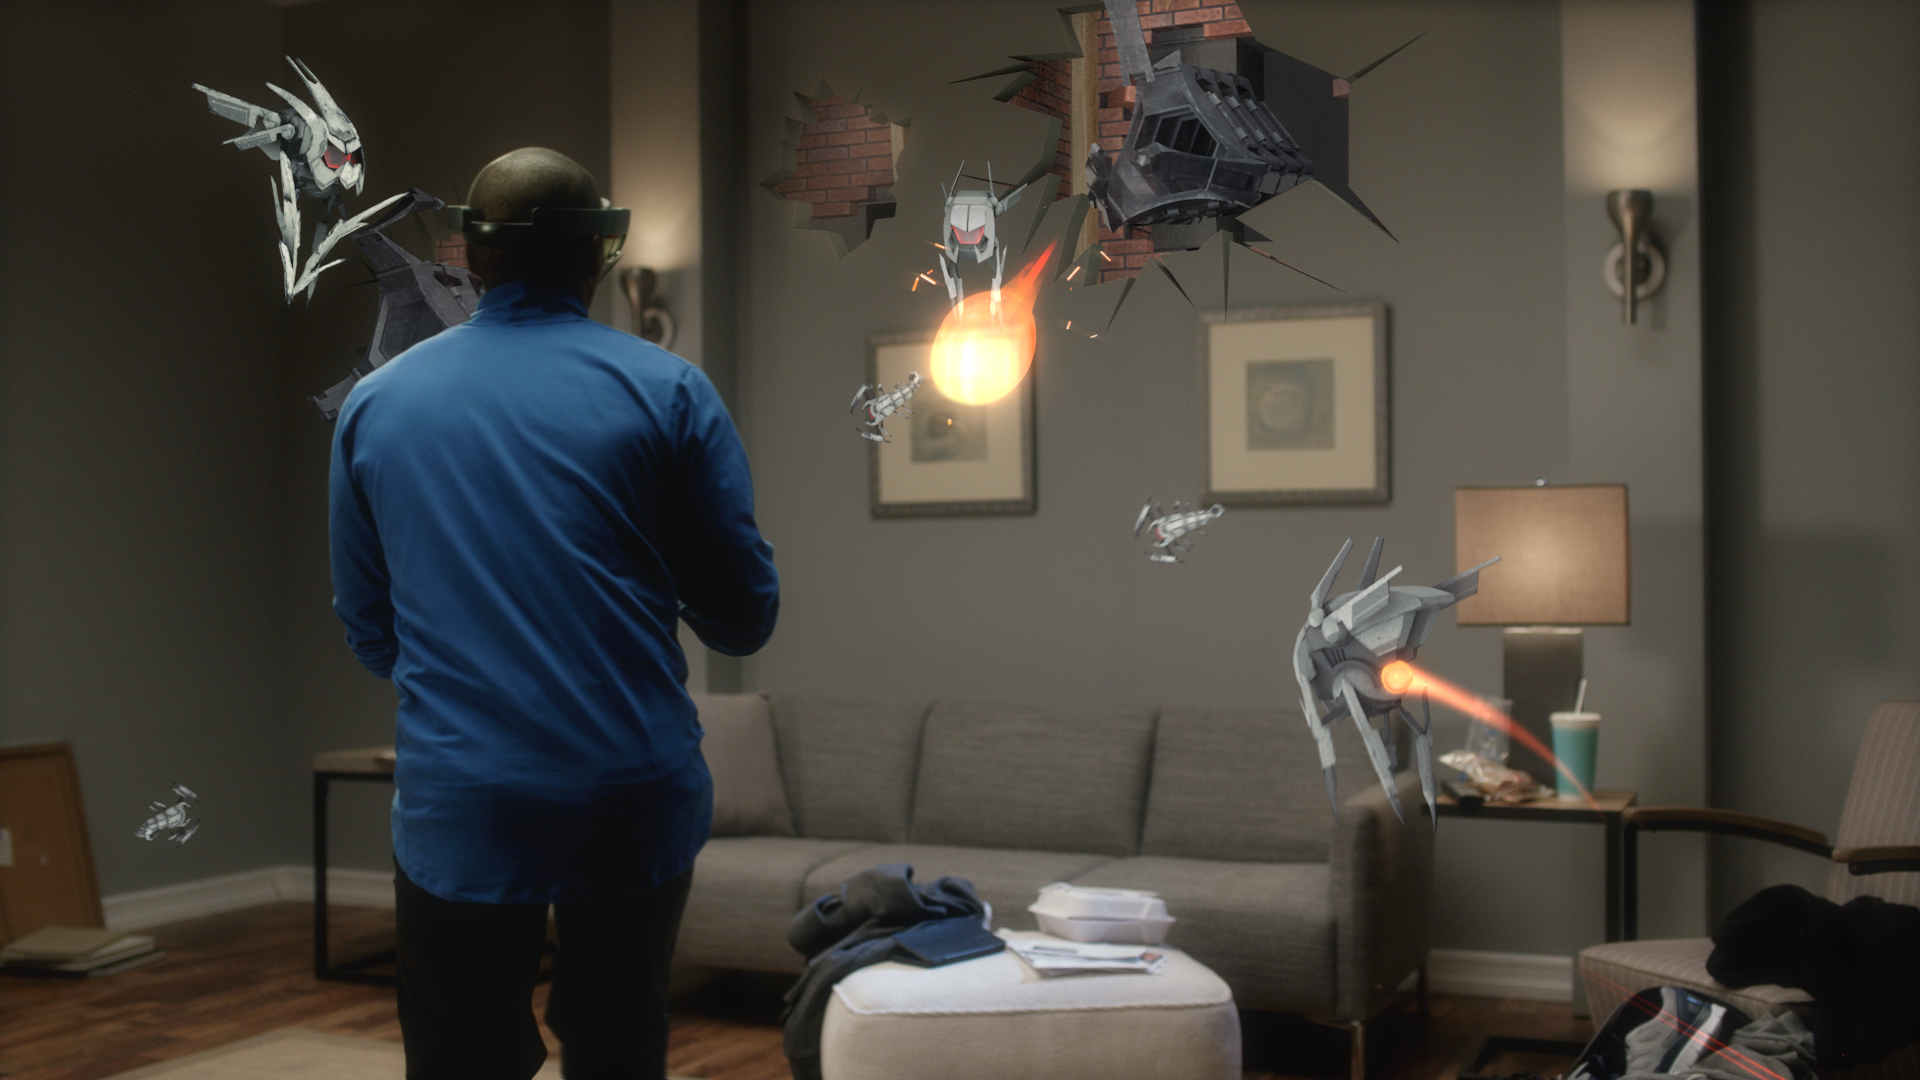 'Project XRay' looks like more fun to play in this photo than in the actual demo.